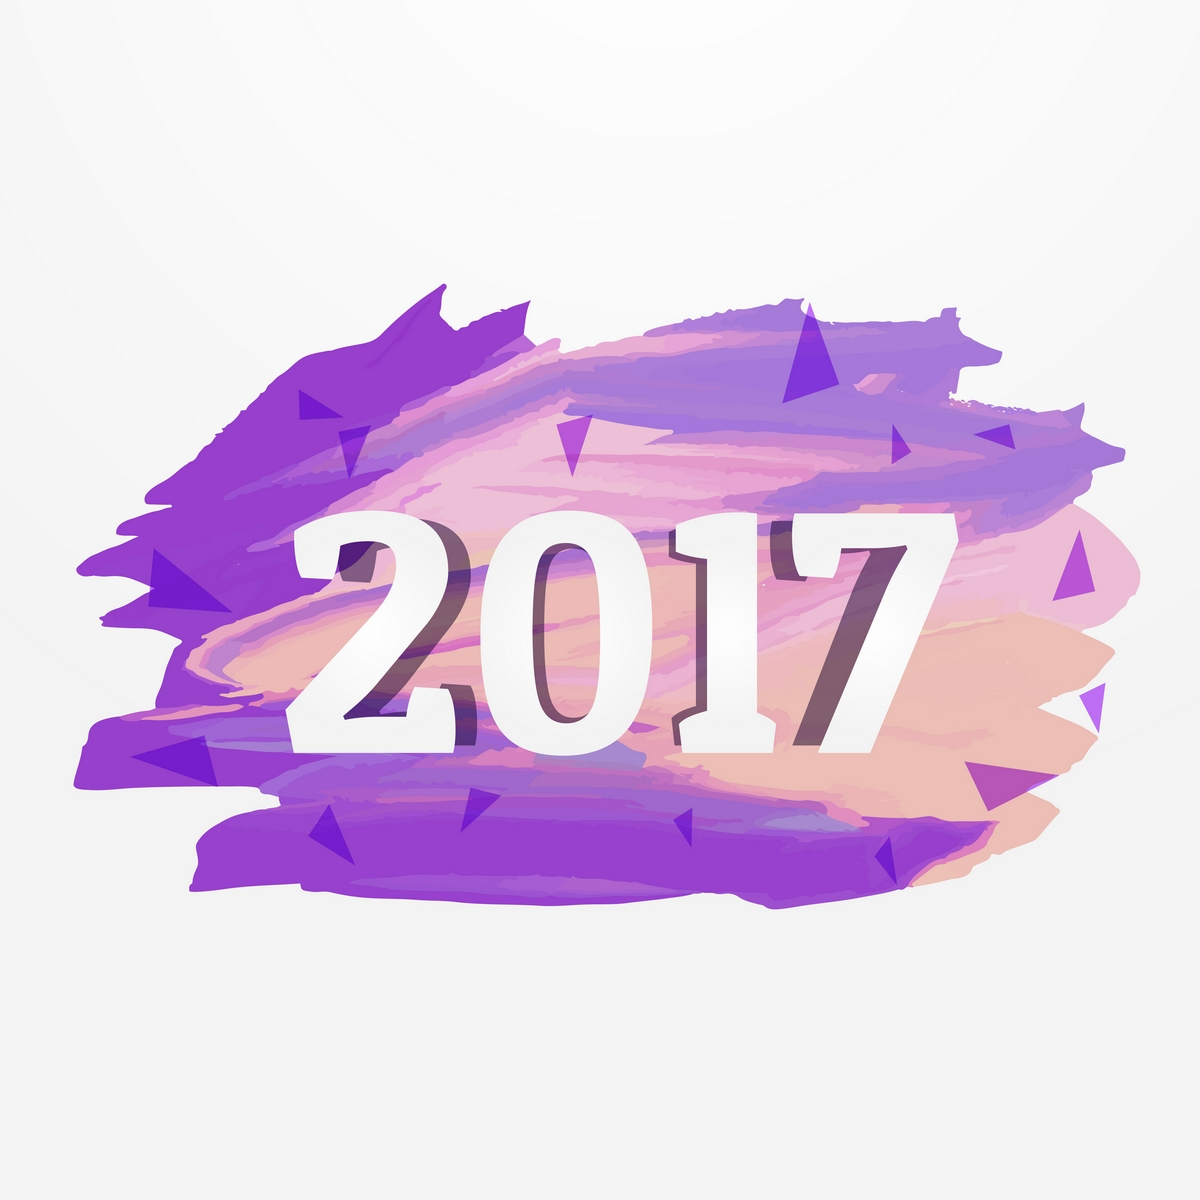 Happy New Year 2017 HD Images For Facebook